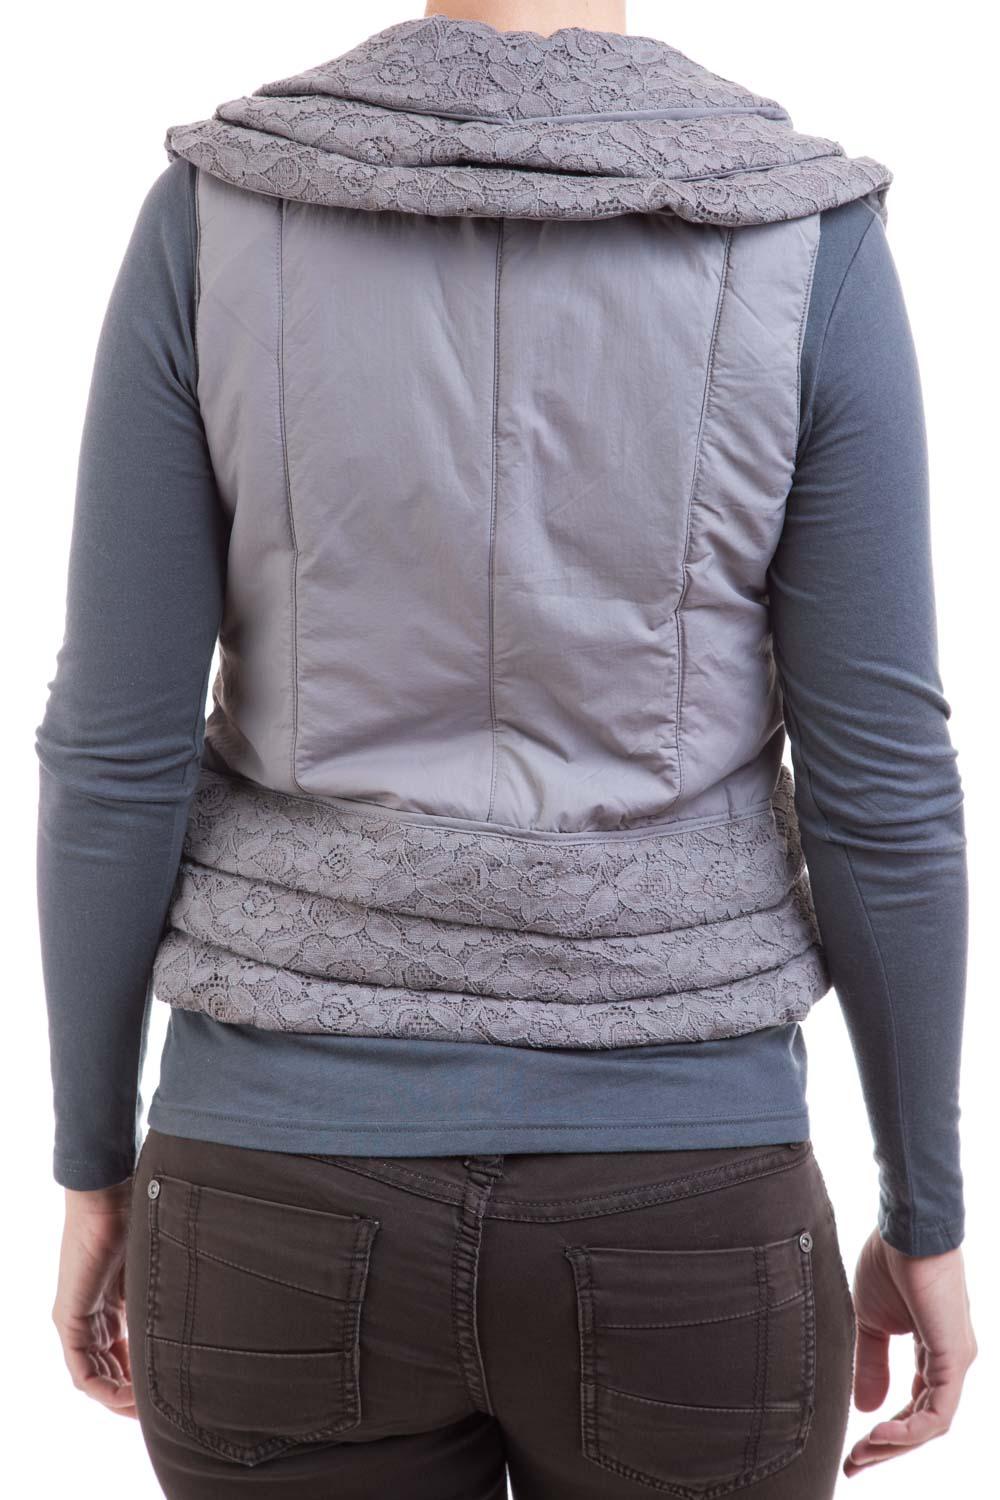 Type 2 Soft Around The Edges Vest